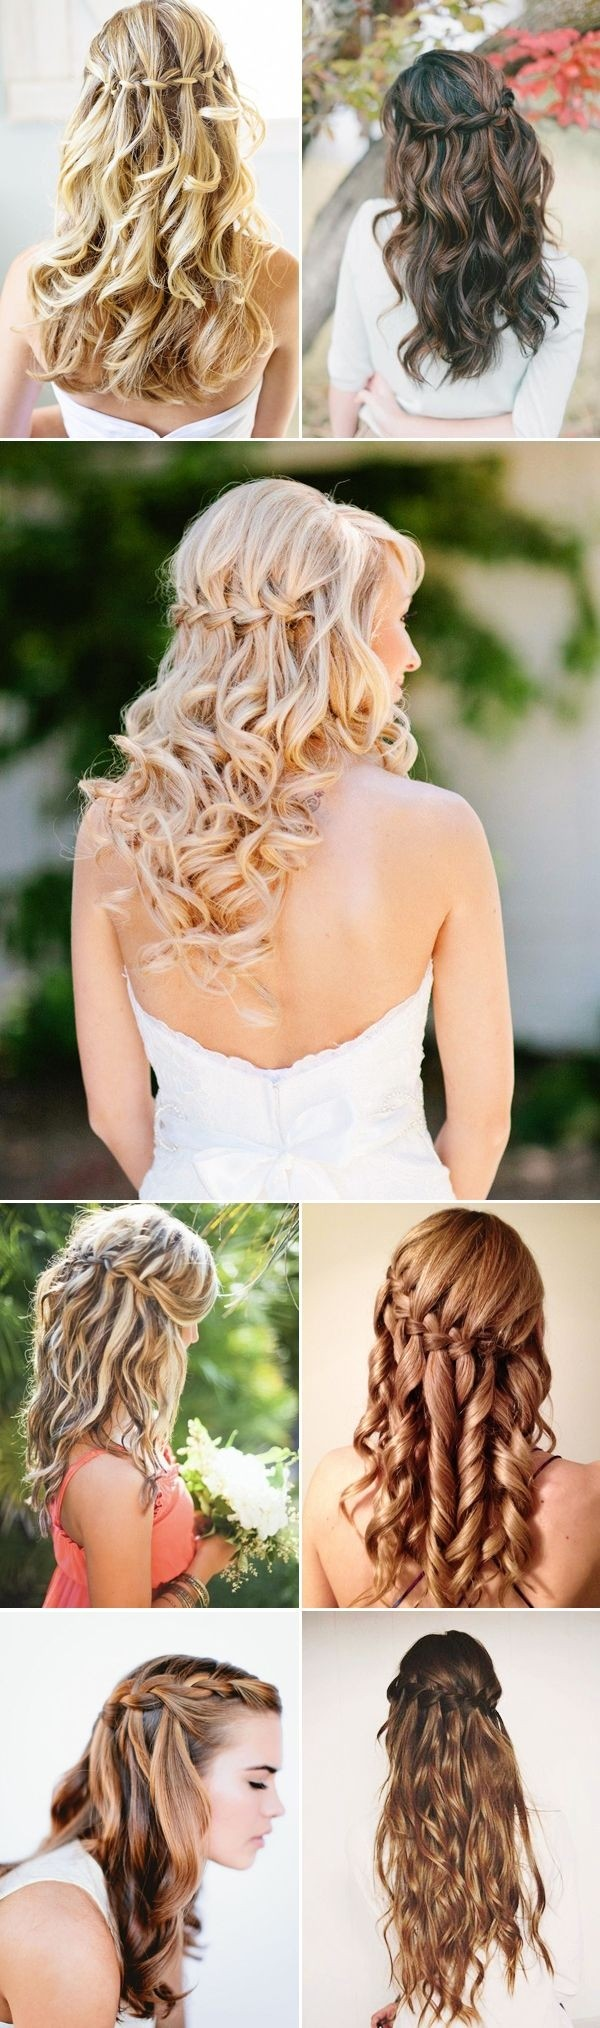 Bridesmaid Hairstyles for Long Hair: Waterfall Braids